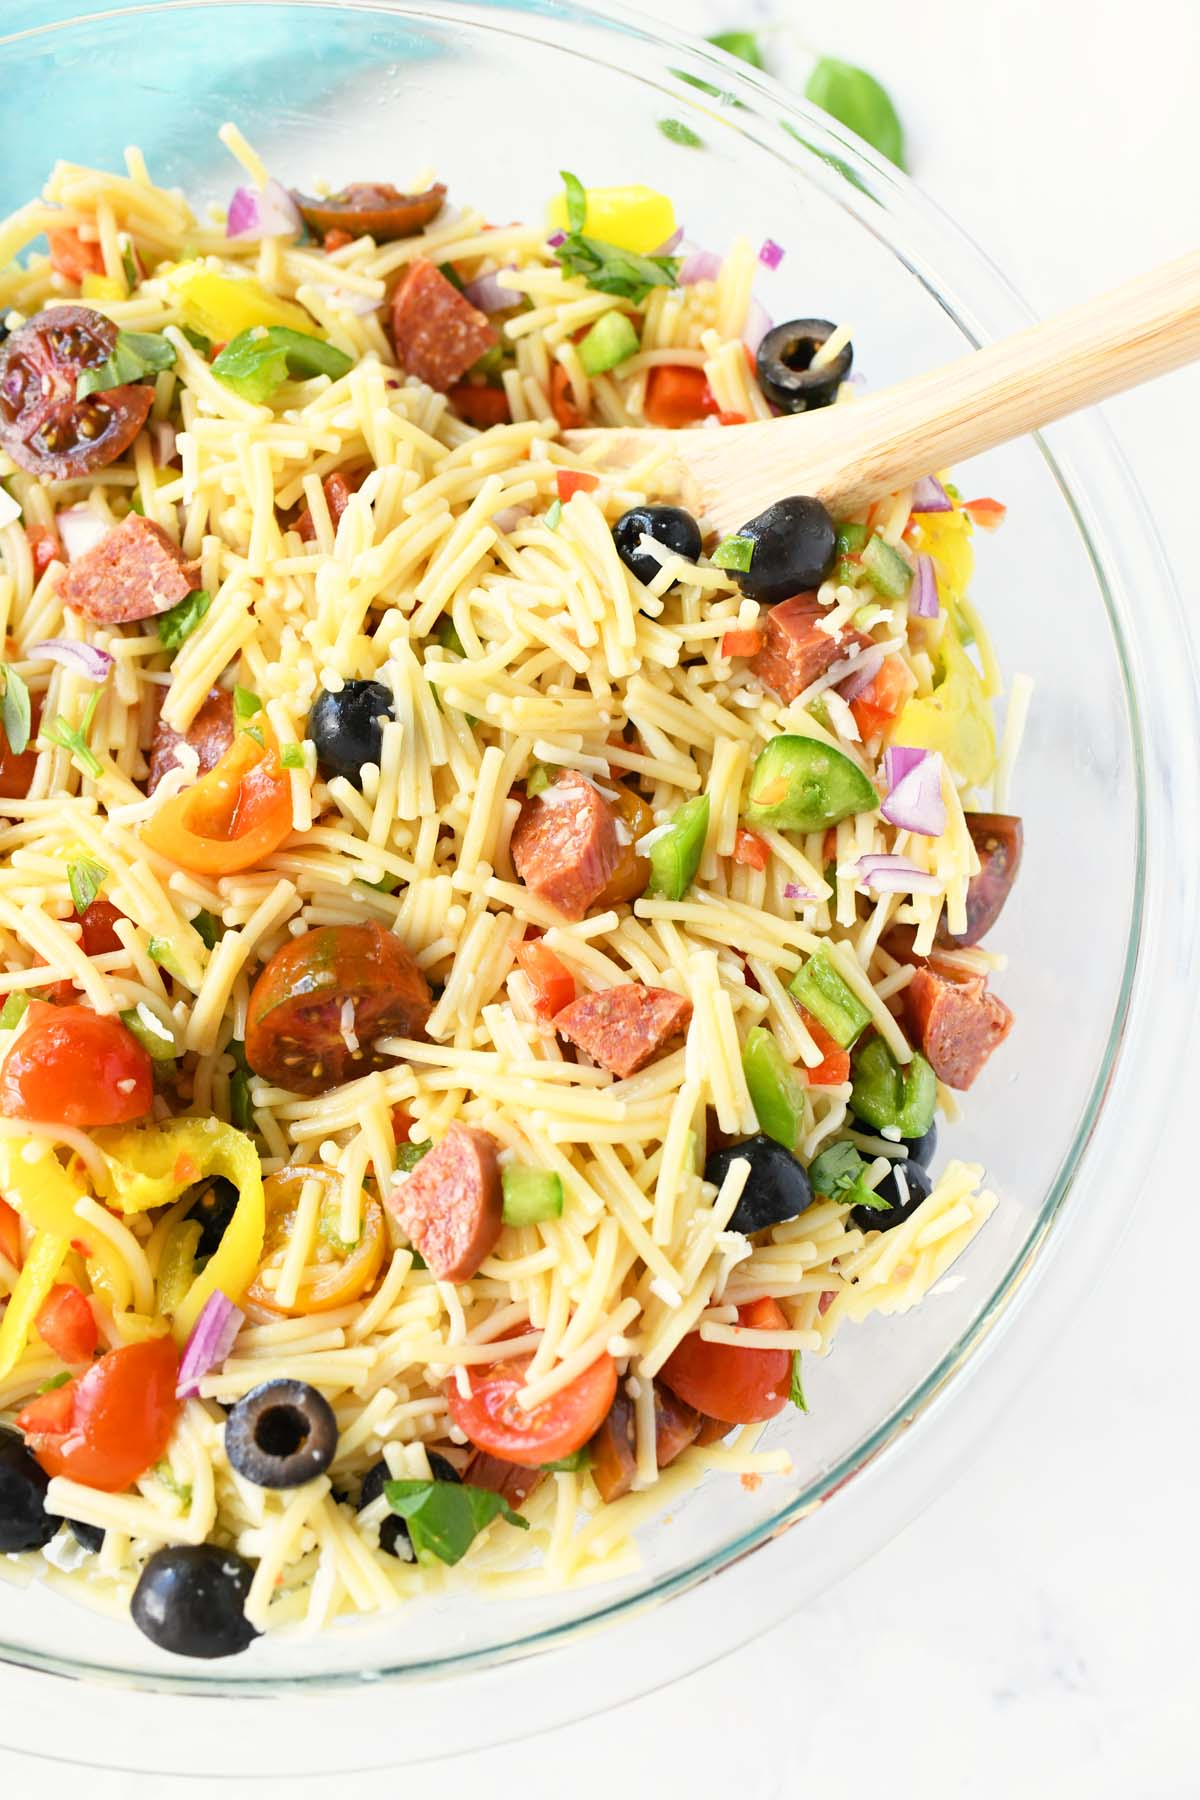 Loaded Pizza Pasta Salad in a glass bowl with a wooden spoon.